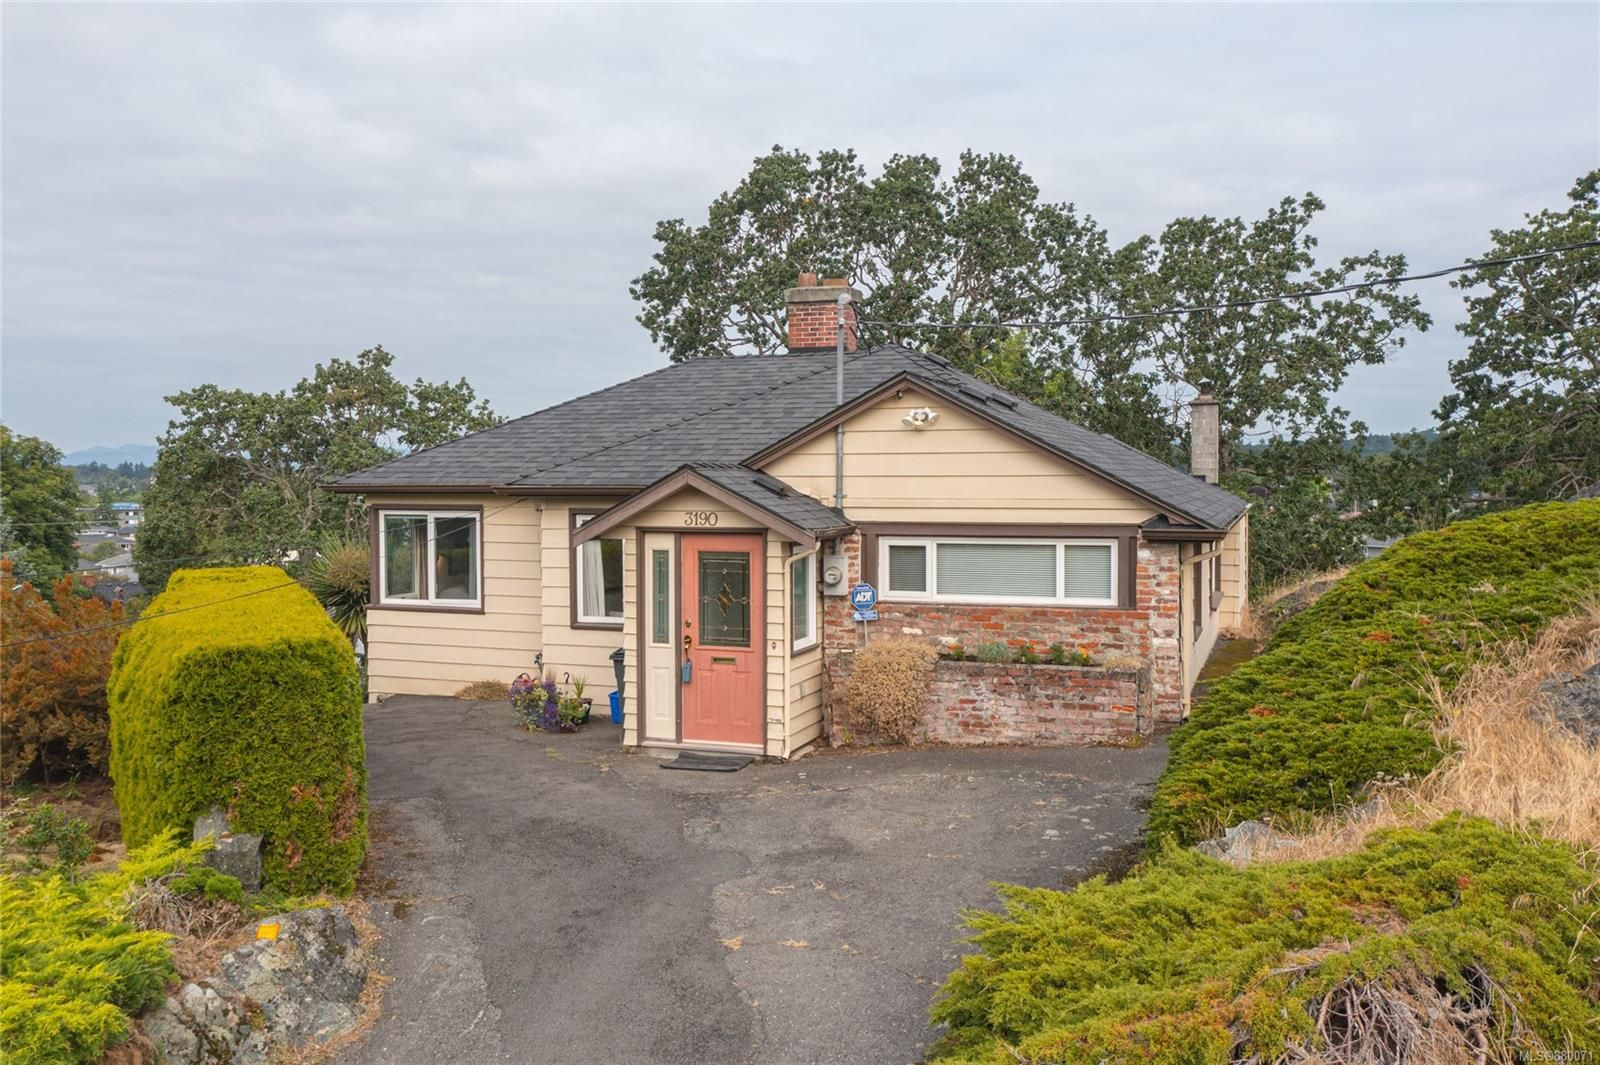 Main Photo: 3190 Richmond Rd in : SE Camosun House for sale (Saanich East)  : MLS®# 880071